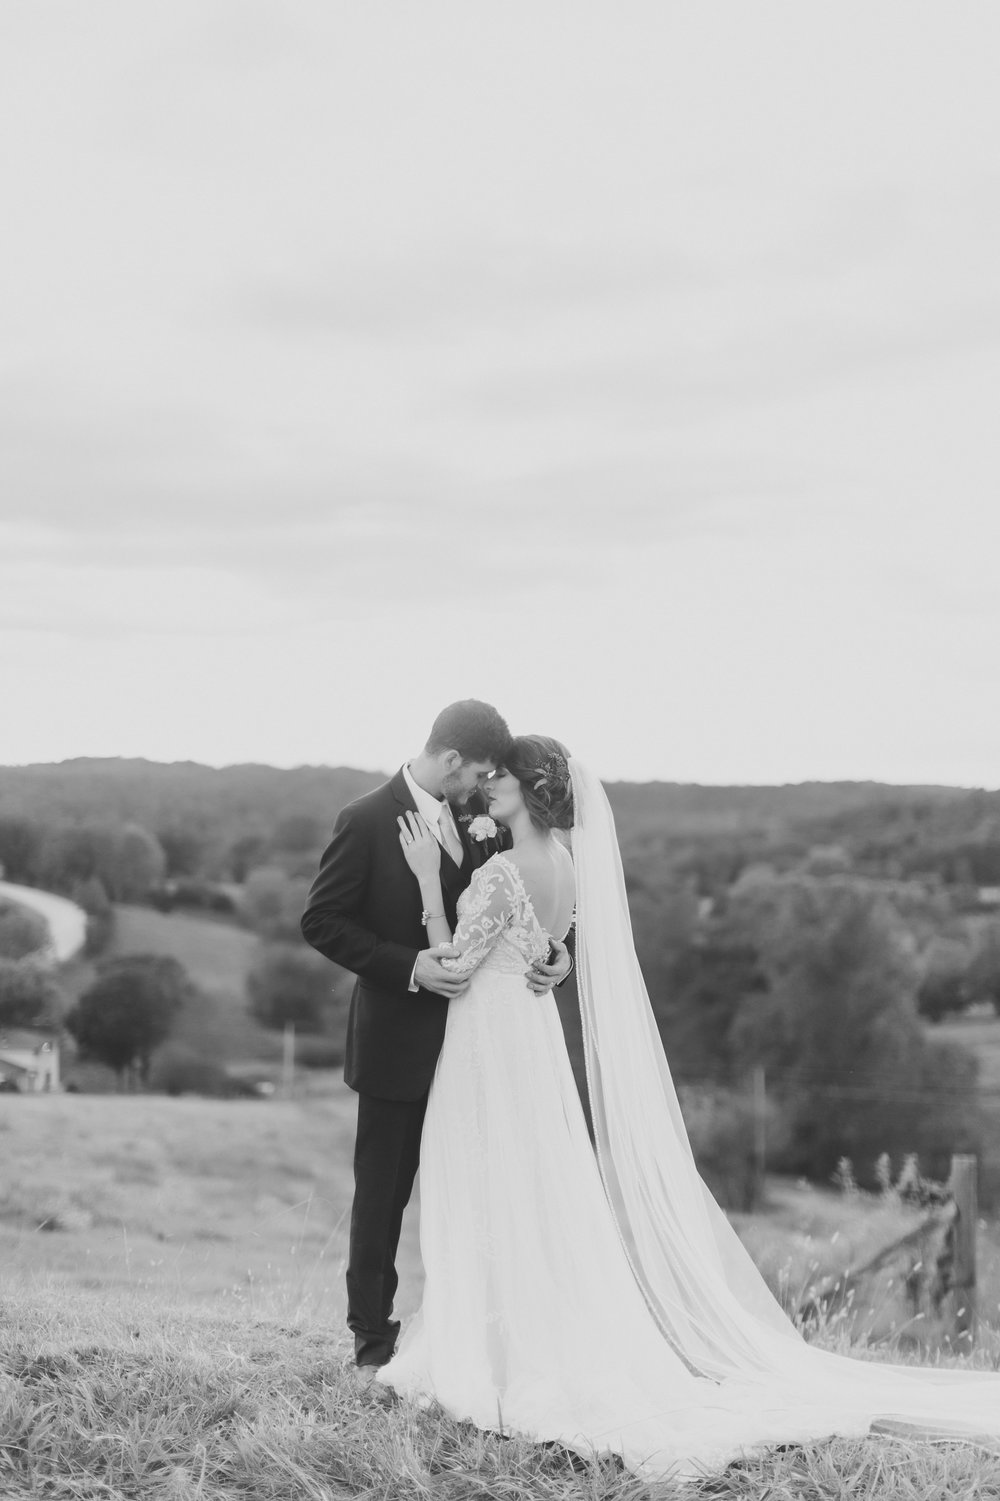 MissouriRusticWedding_StLouisWeddingPhotographer_AliciaDan_CatherineRhodesPhotography-4097-Edit.jpg